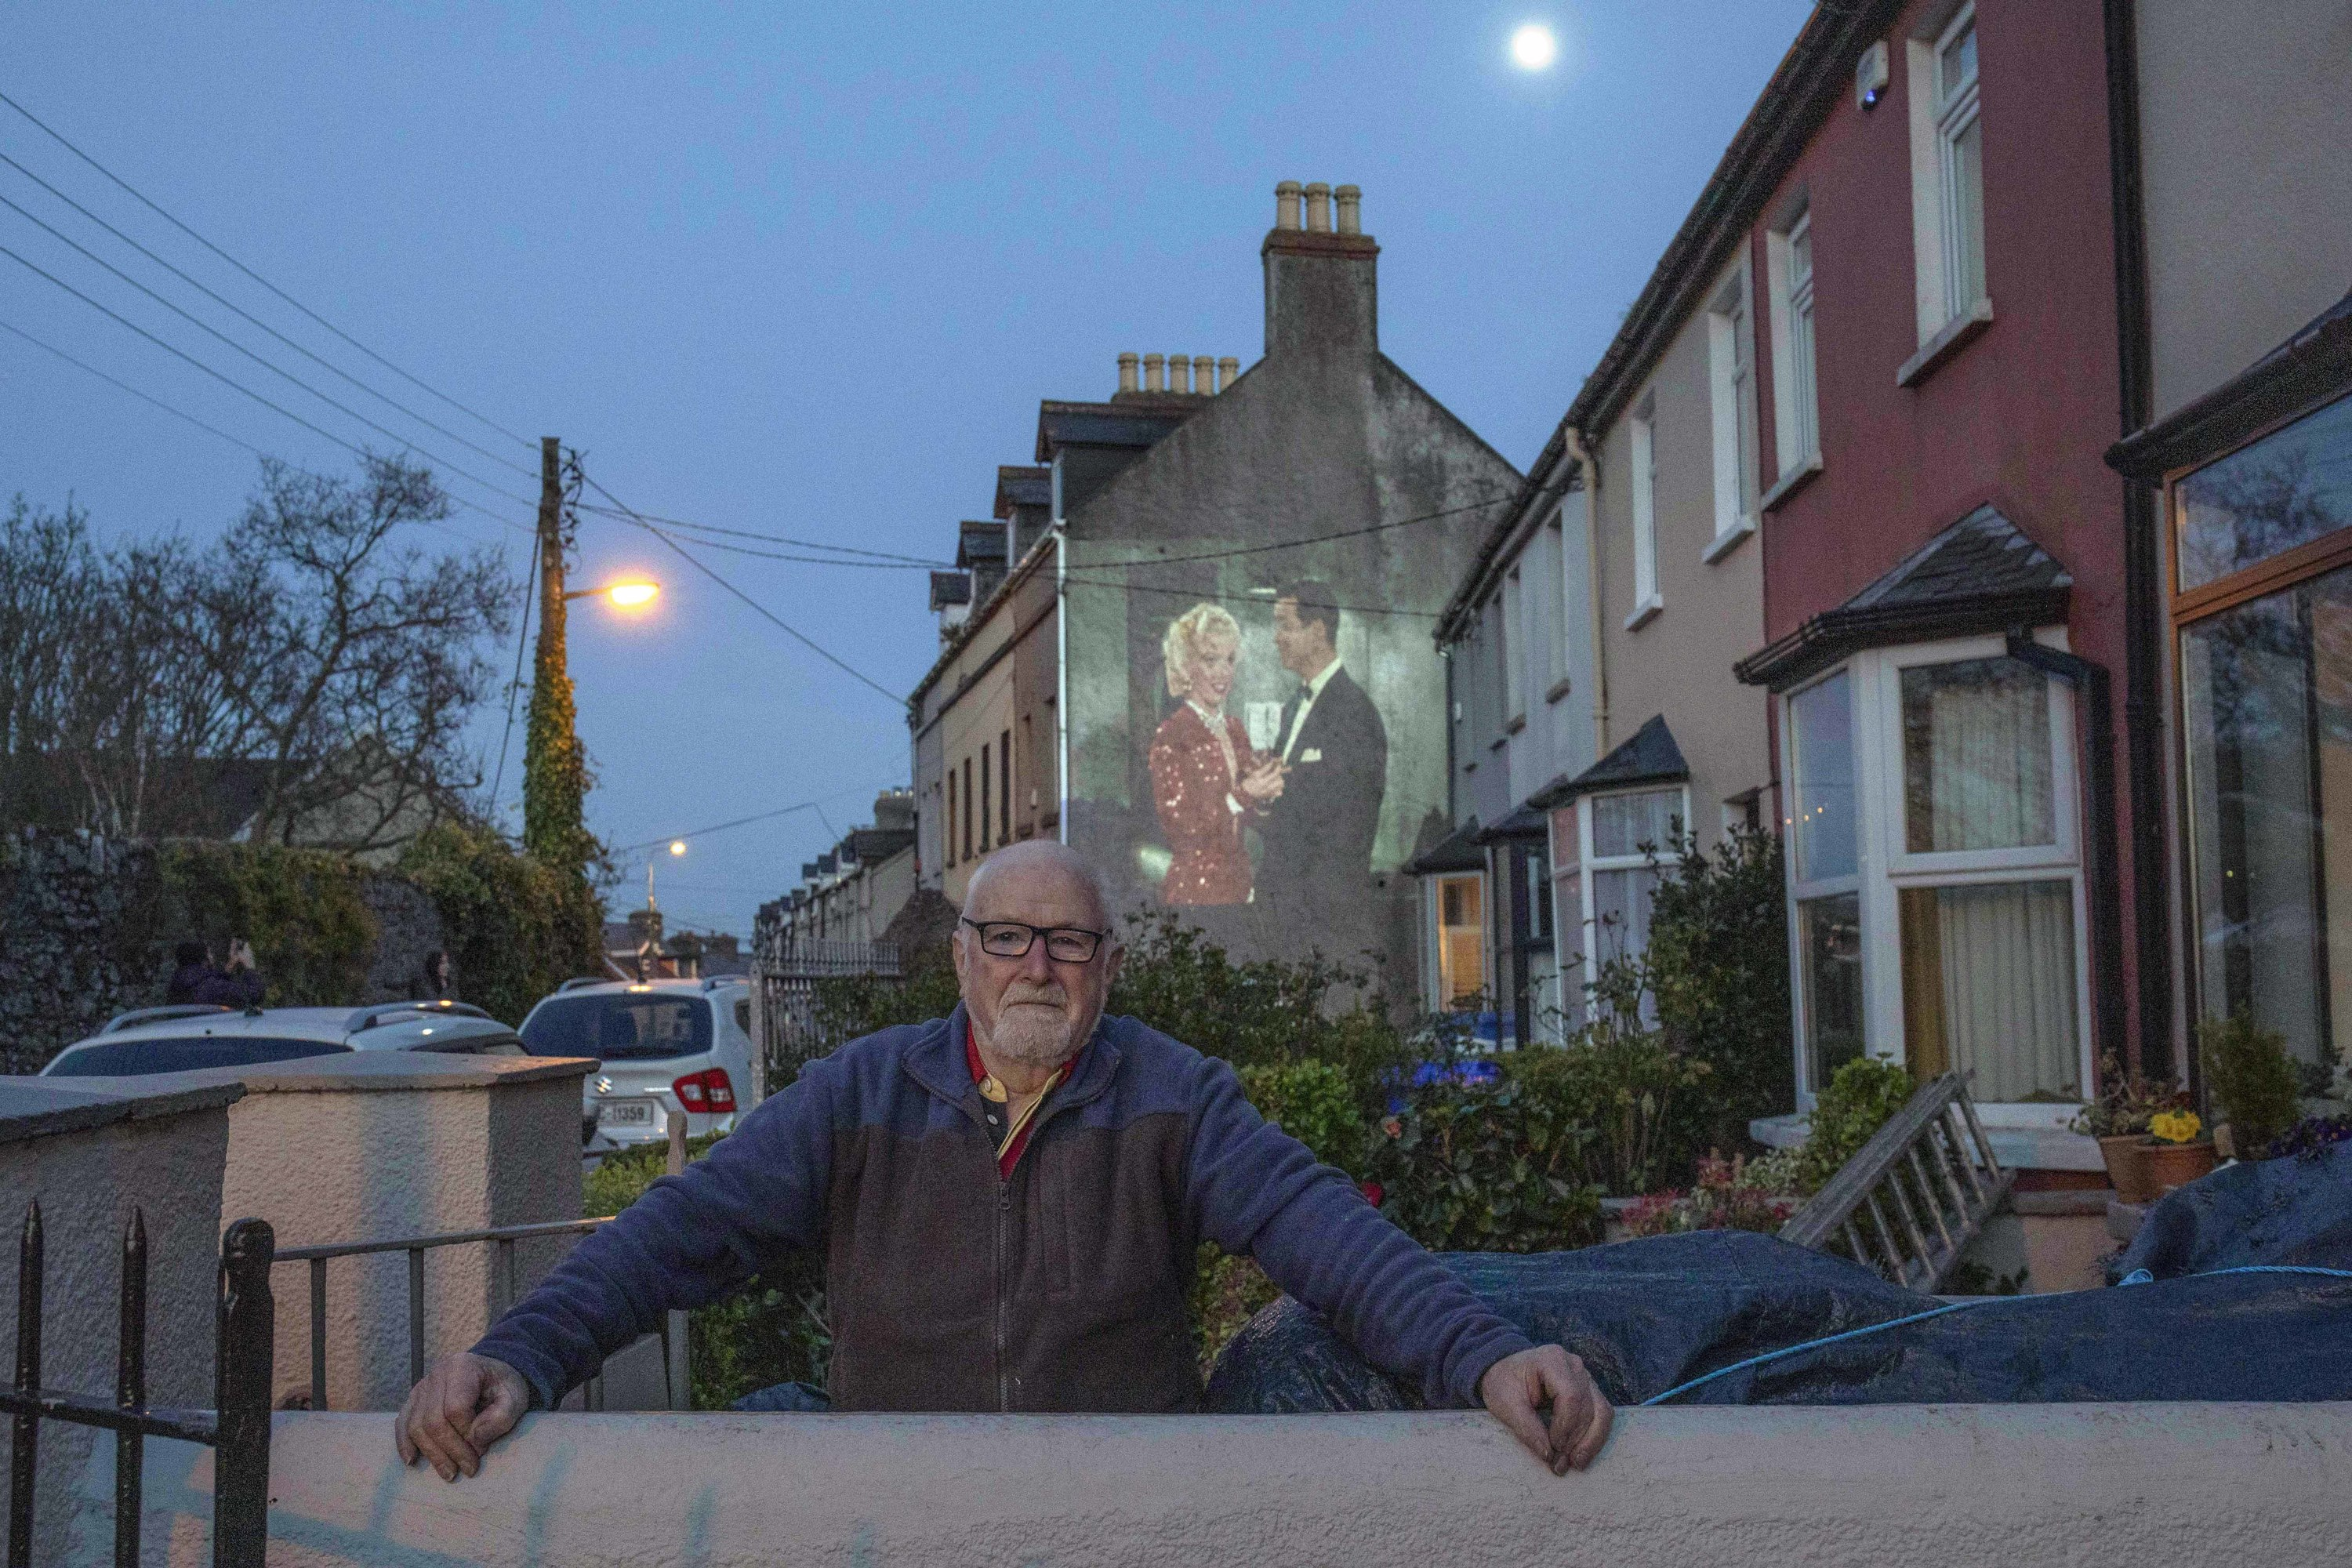 Irish street projecting films